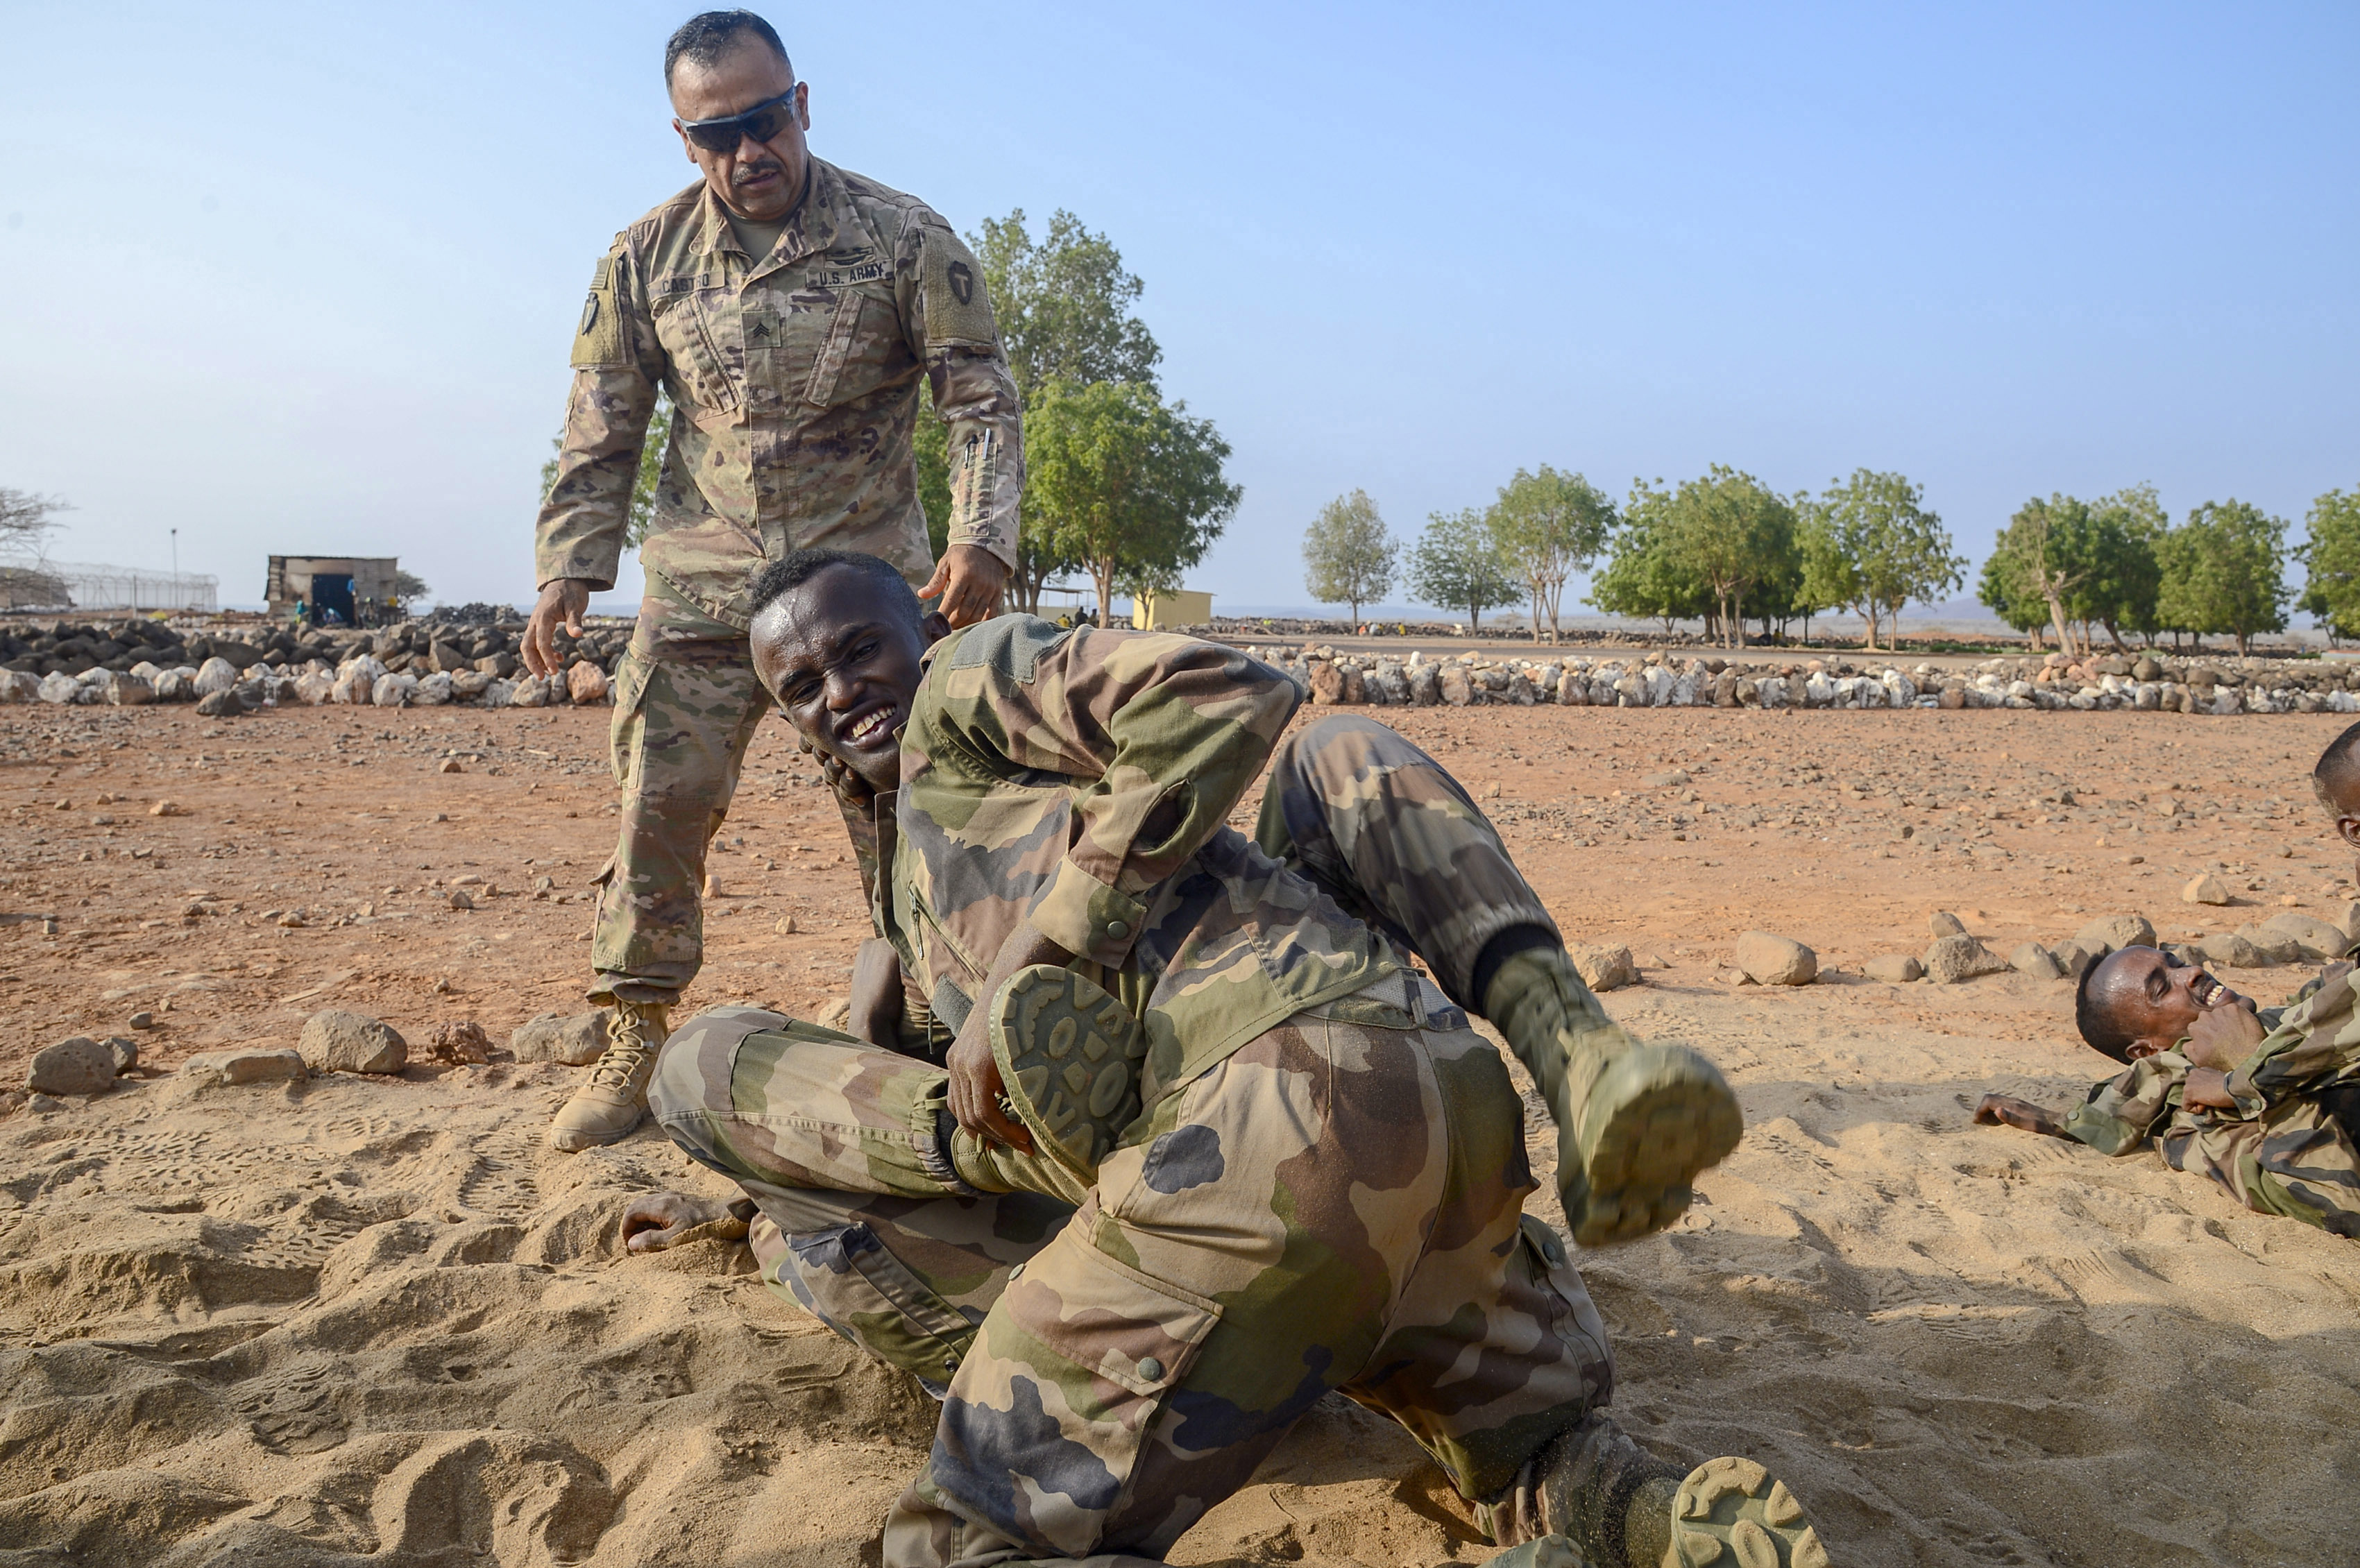 U.S. Army Sergeant Santiago Castro, Alpha Company, 3rd Battalion, 141st Infantry Regiment, Texas National Guard, trains Djiboutian Soldiers in U.S. Army Combatives at a training site outside Djibouti City, April 16, 2018. U.S. Army Combatives training is one of the courses for the Djiboutian Army's Rapid Intervention Battalion, a newly formed crisis response unit. (U.S. Navy Photo by Mass Communication Specialist 2nd Class Timothy M. Ahearn)